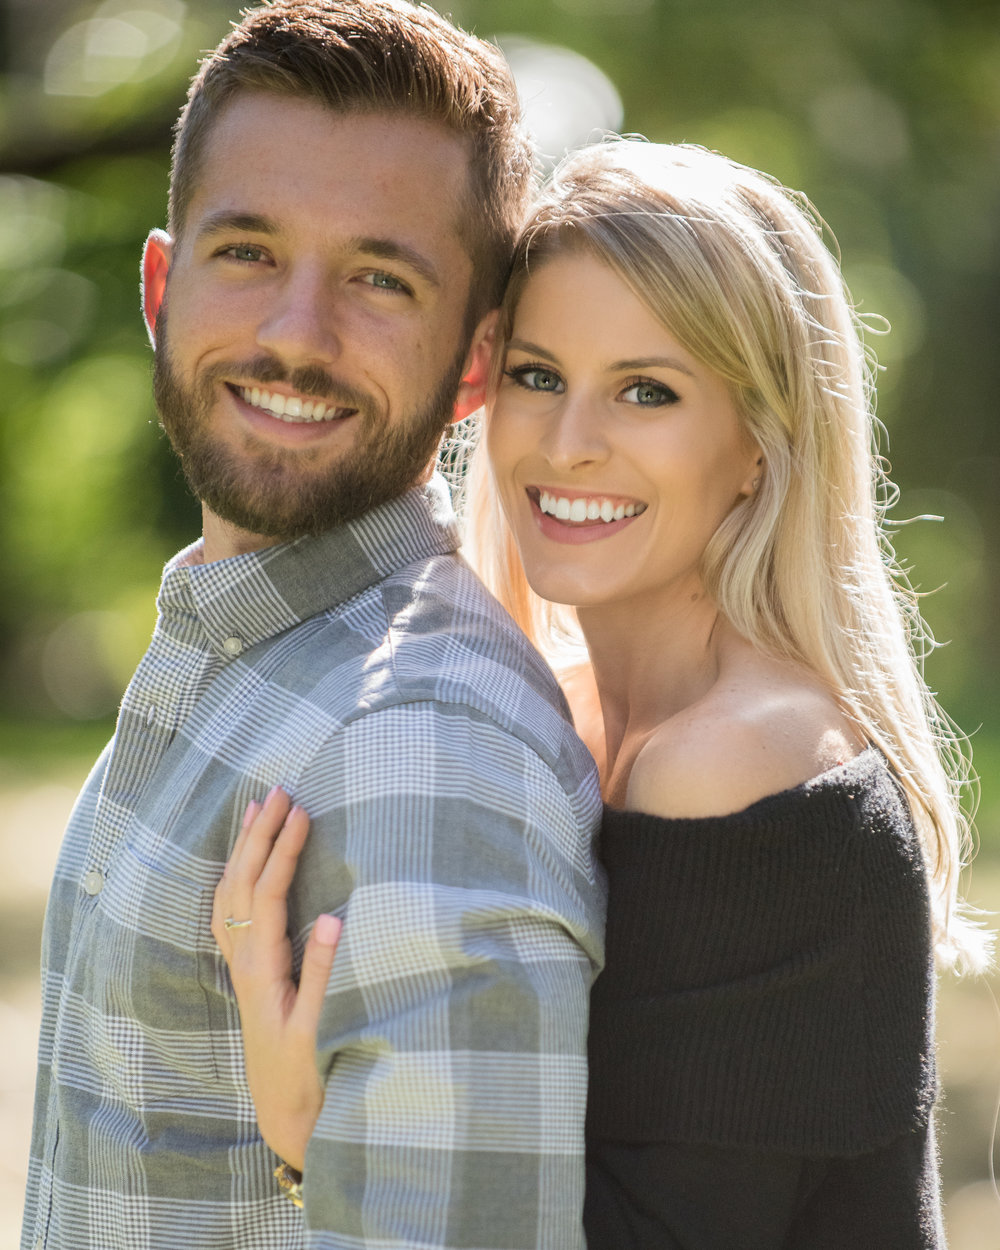 engagement shoot-haley-brandon-8.jpg